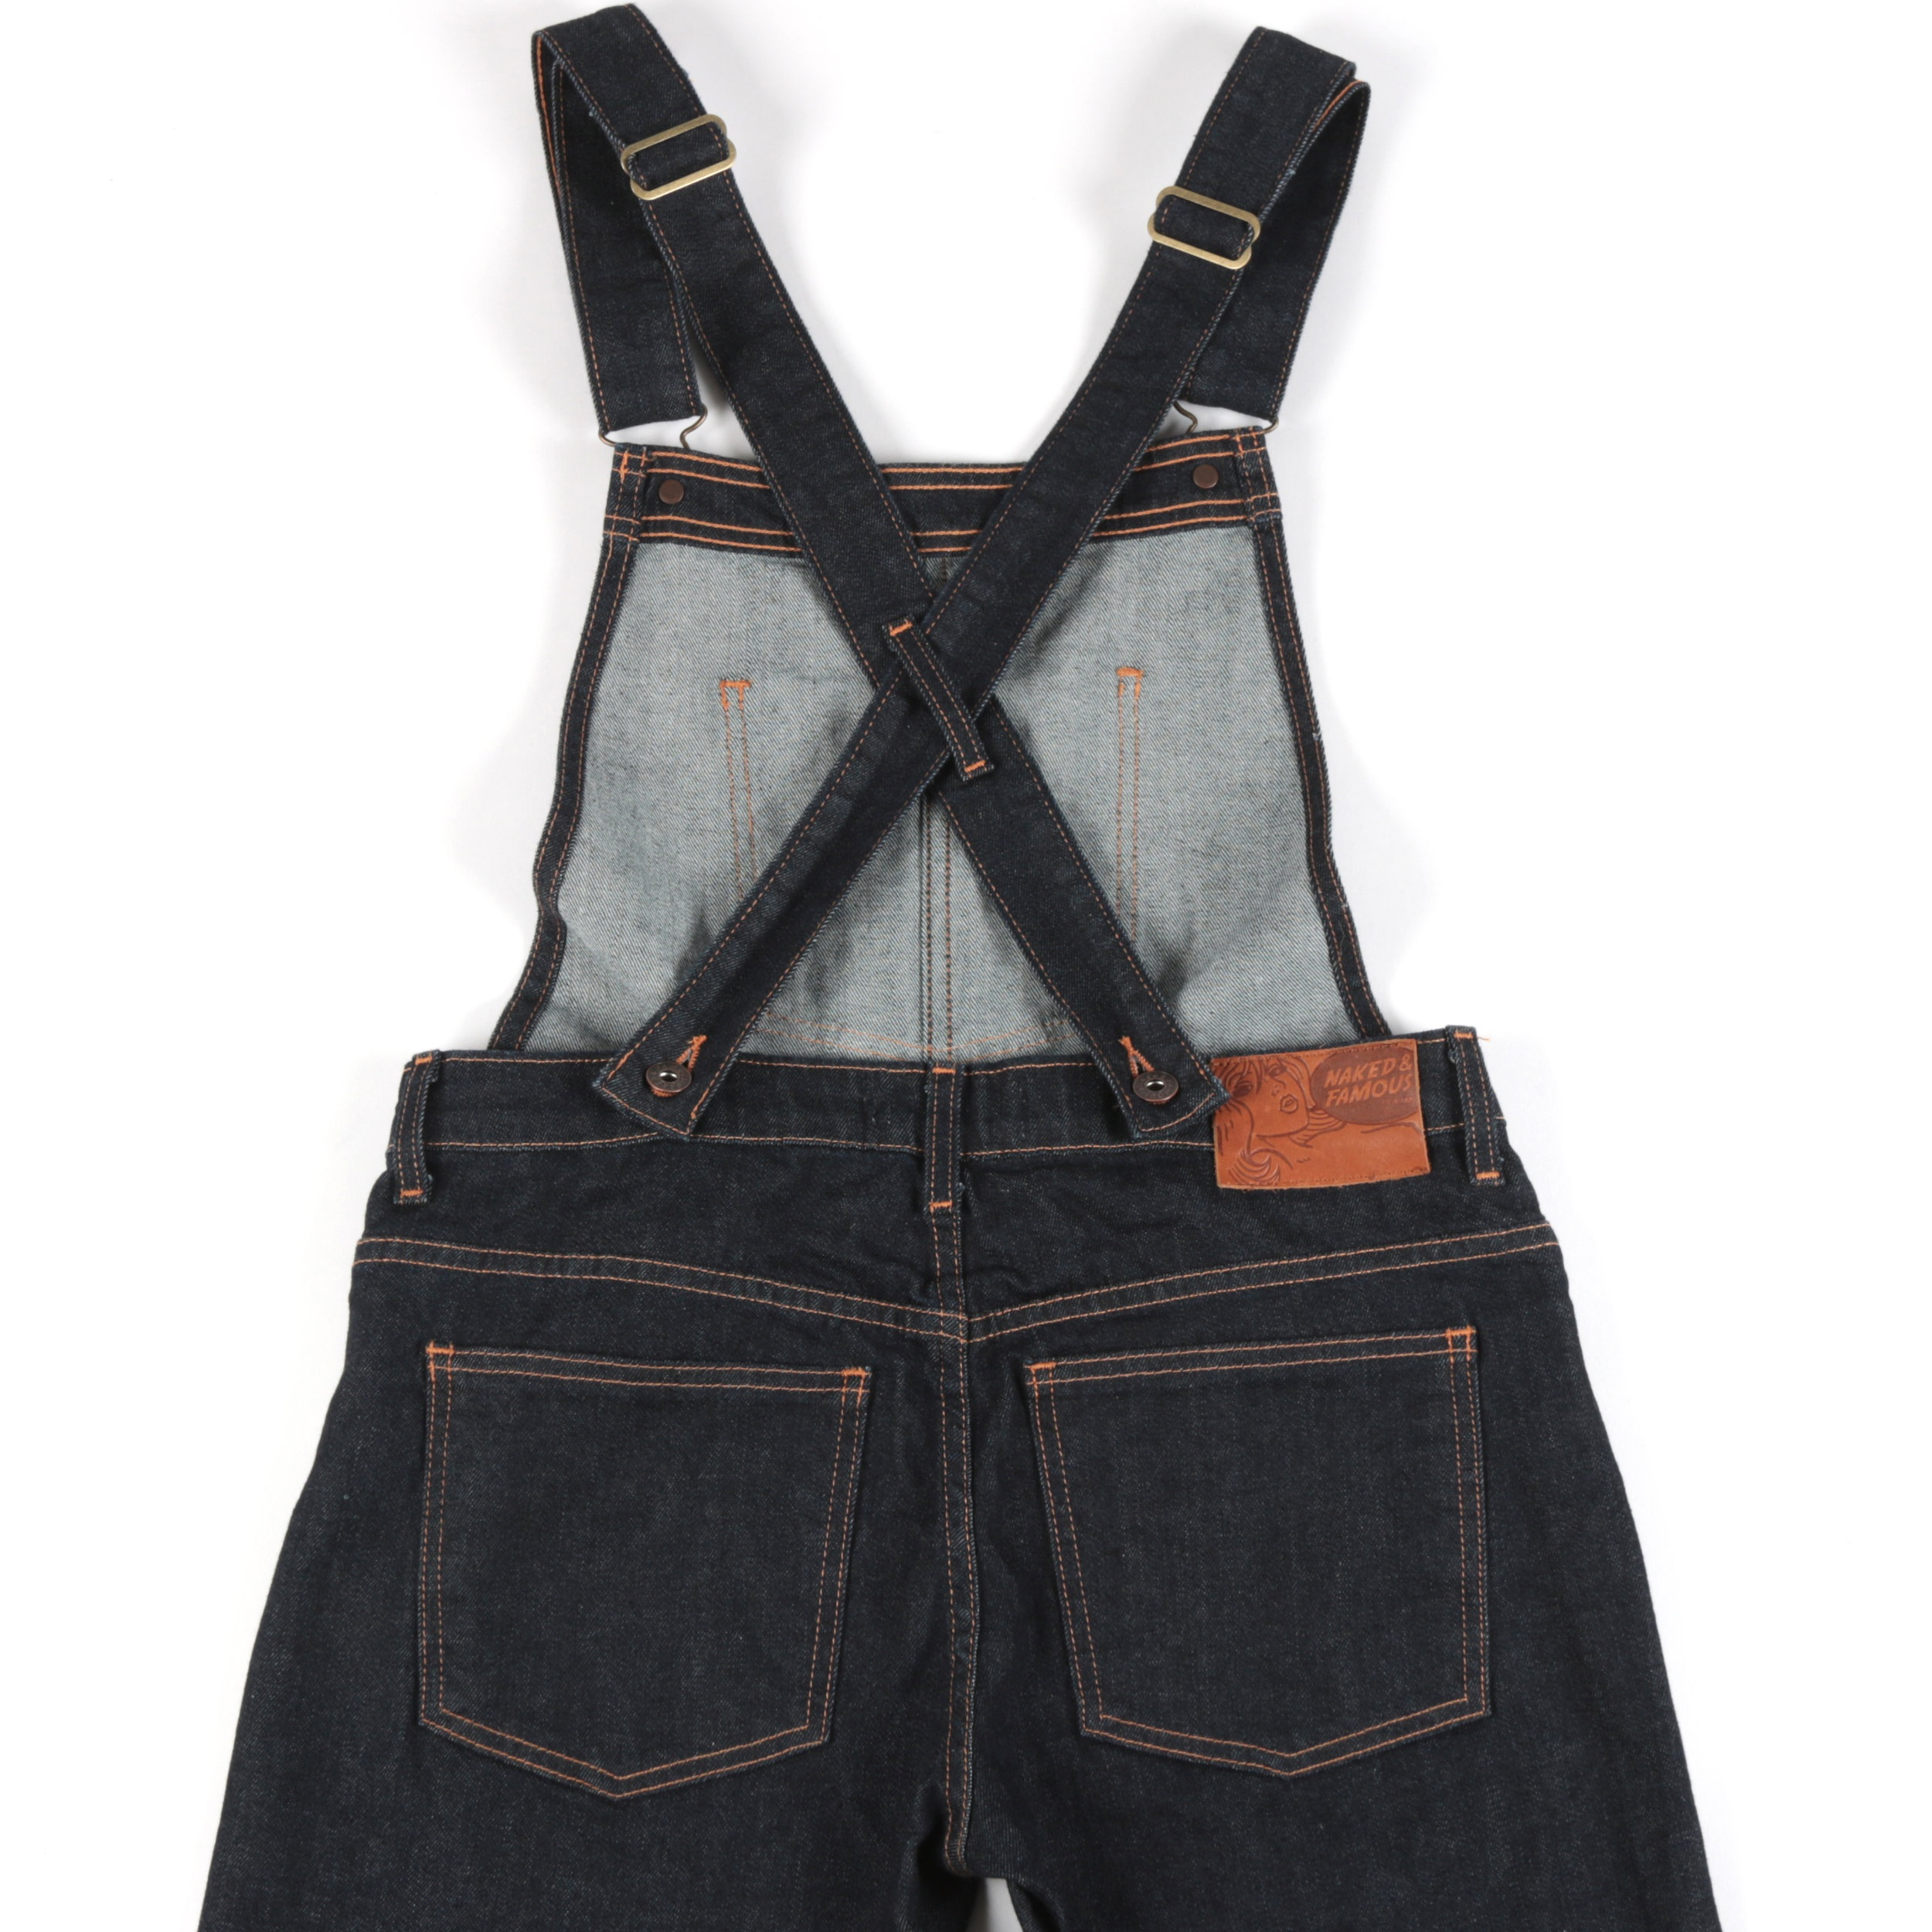 Women's Overalls 11oz Stretch Selvedge Back View